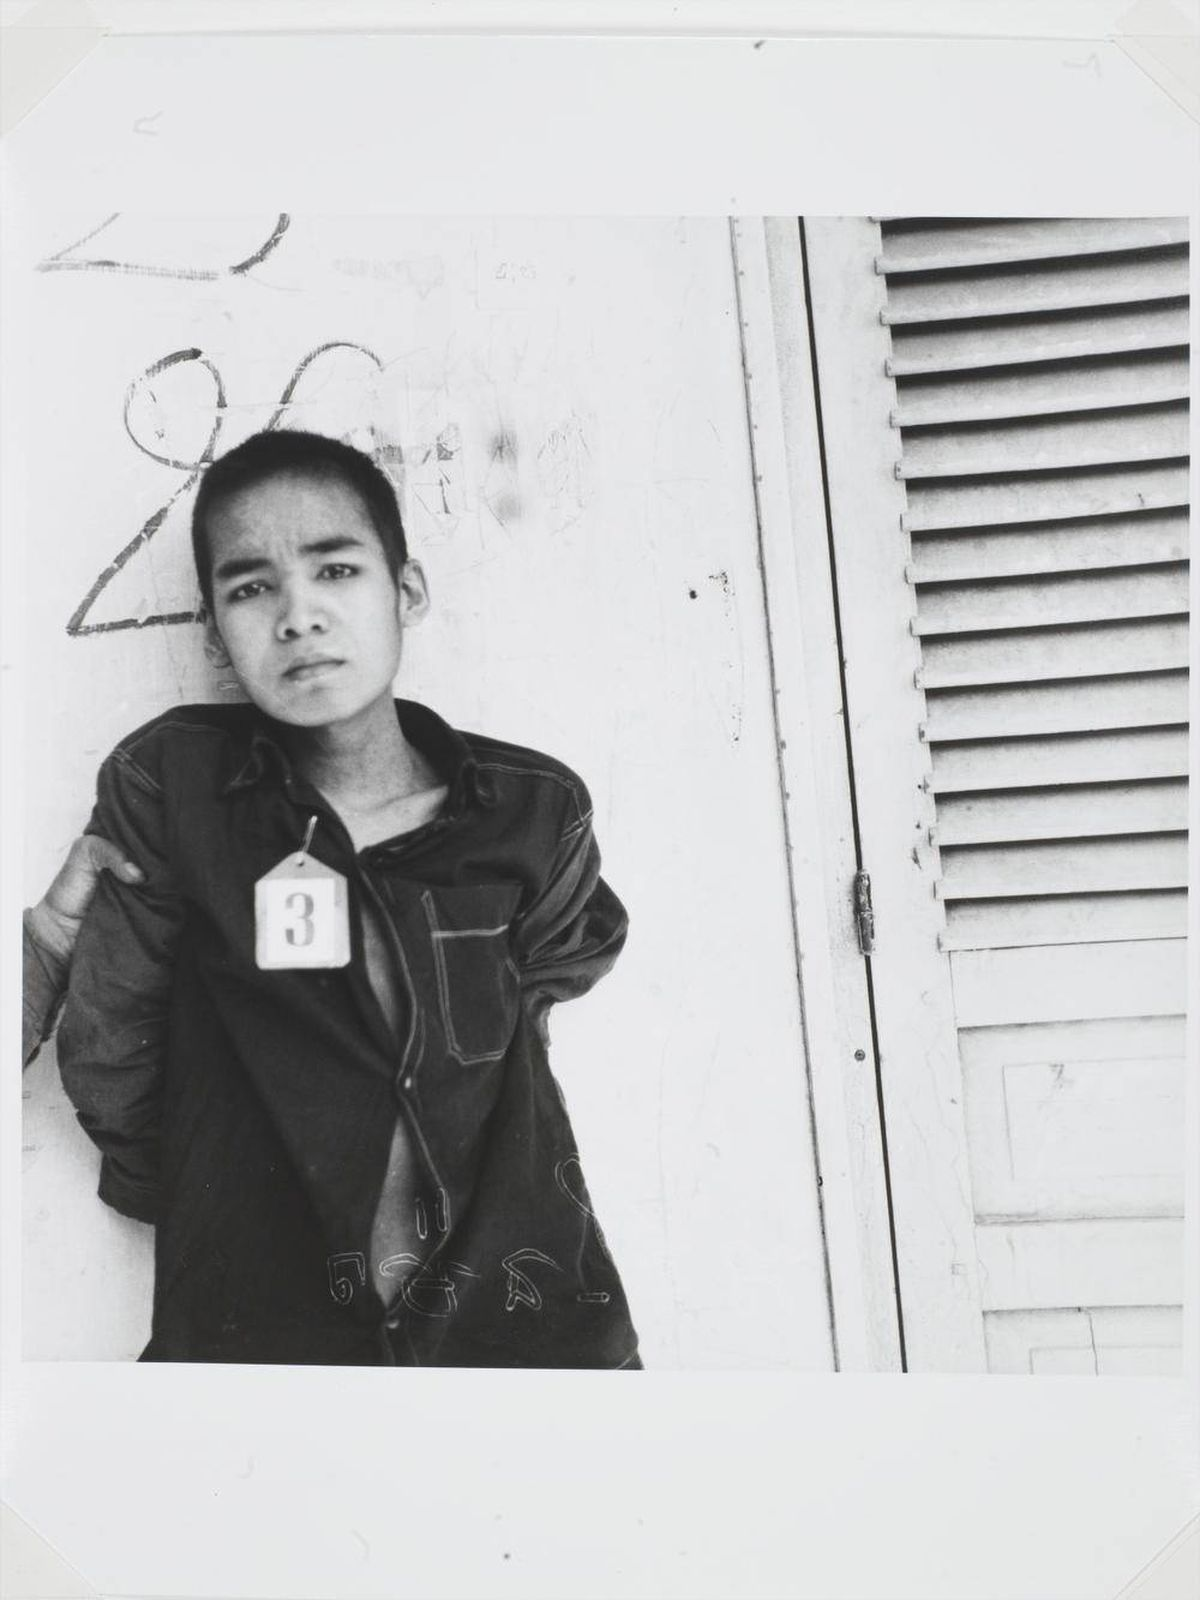 Courtesy of the Tuol Sleng Genocide Museum and Photo Archive Group